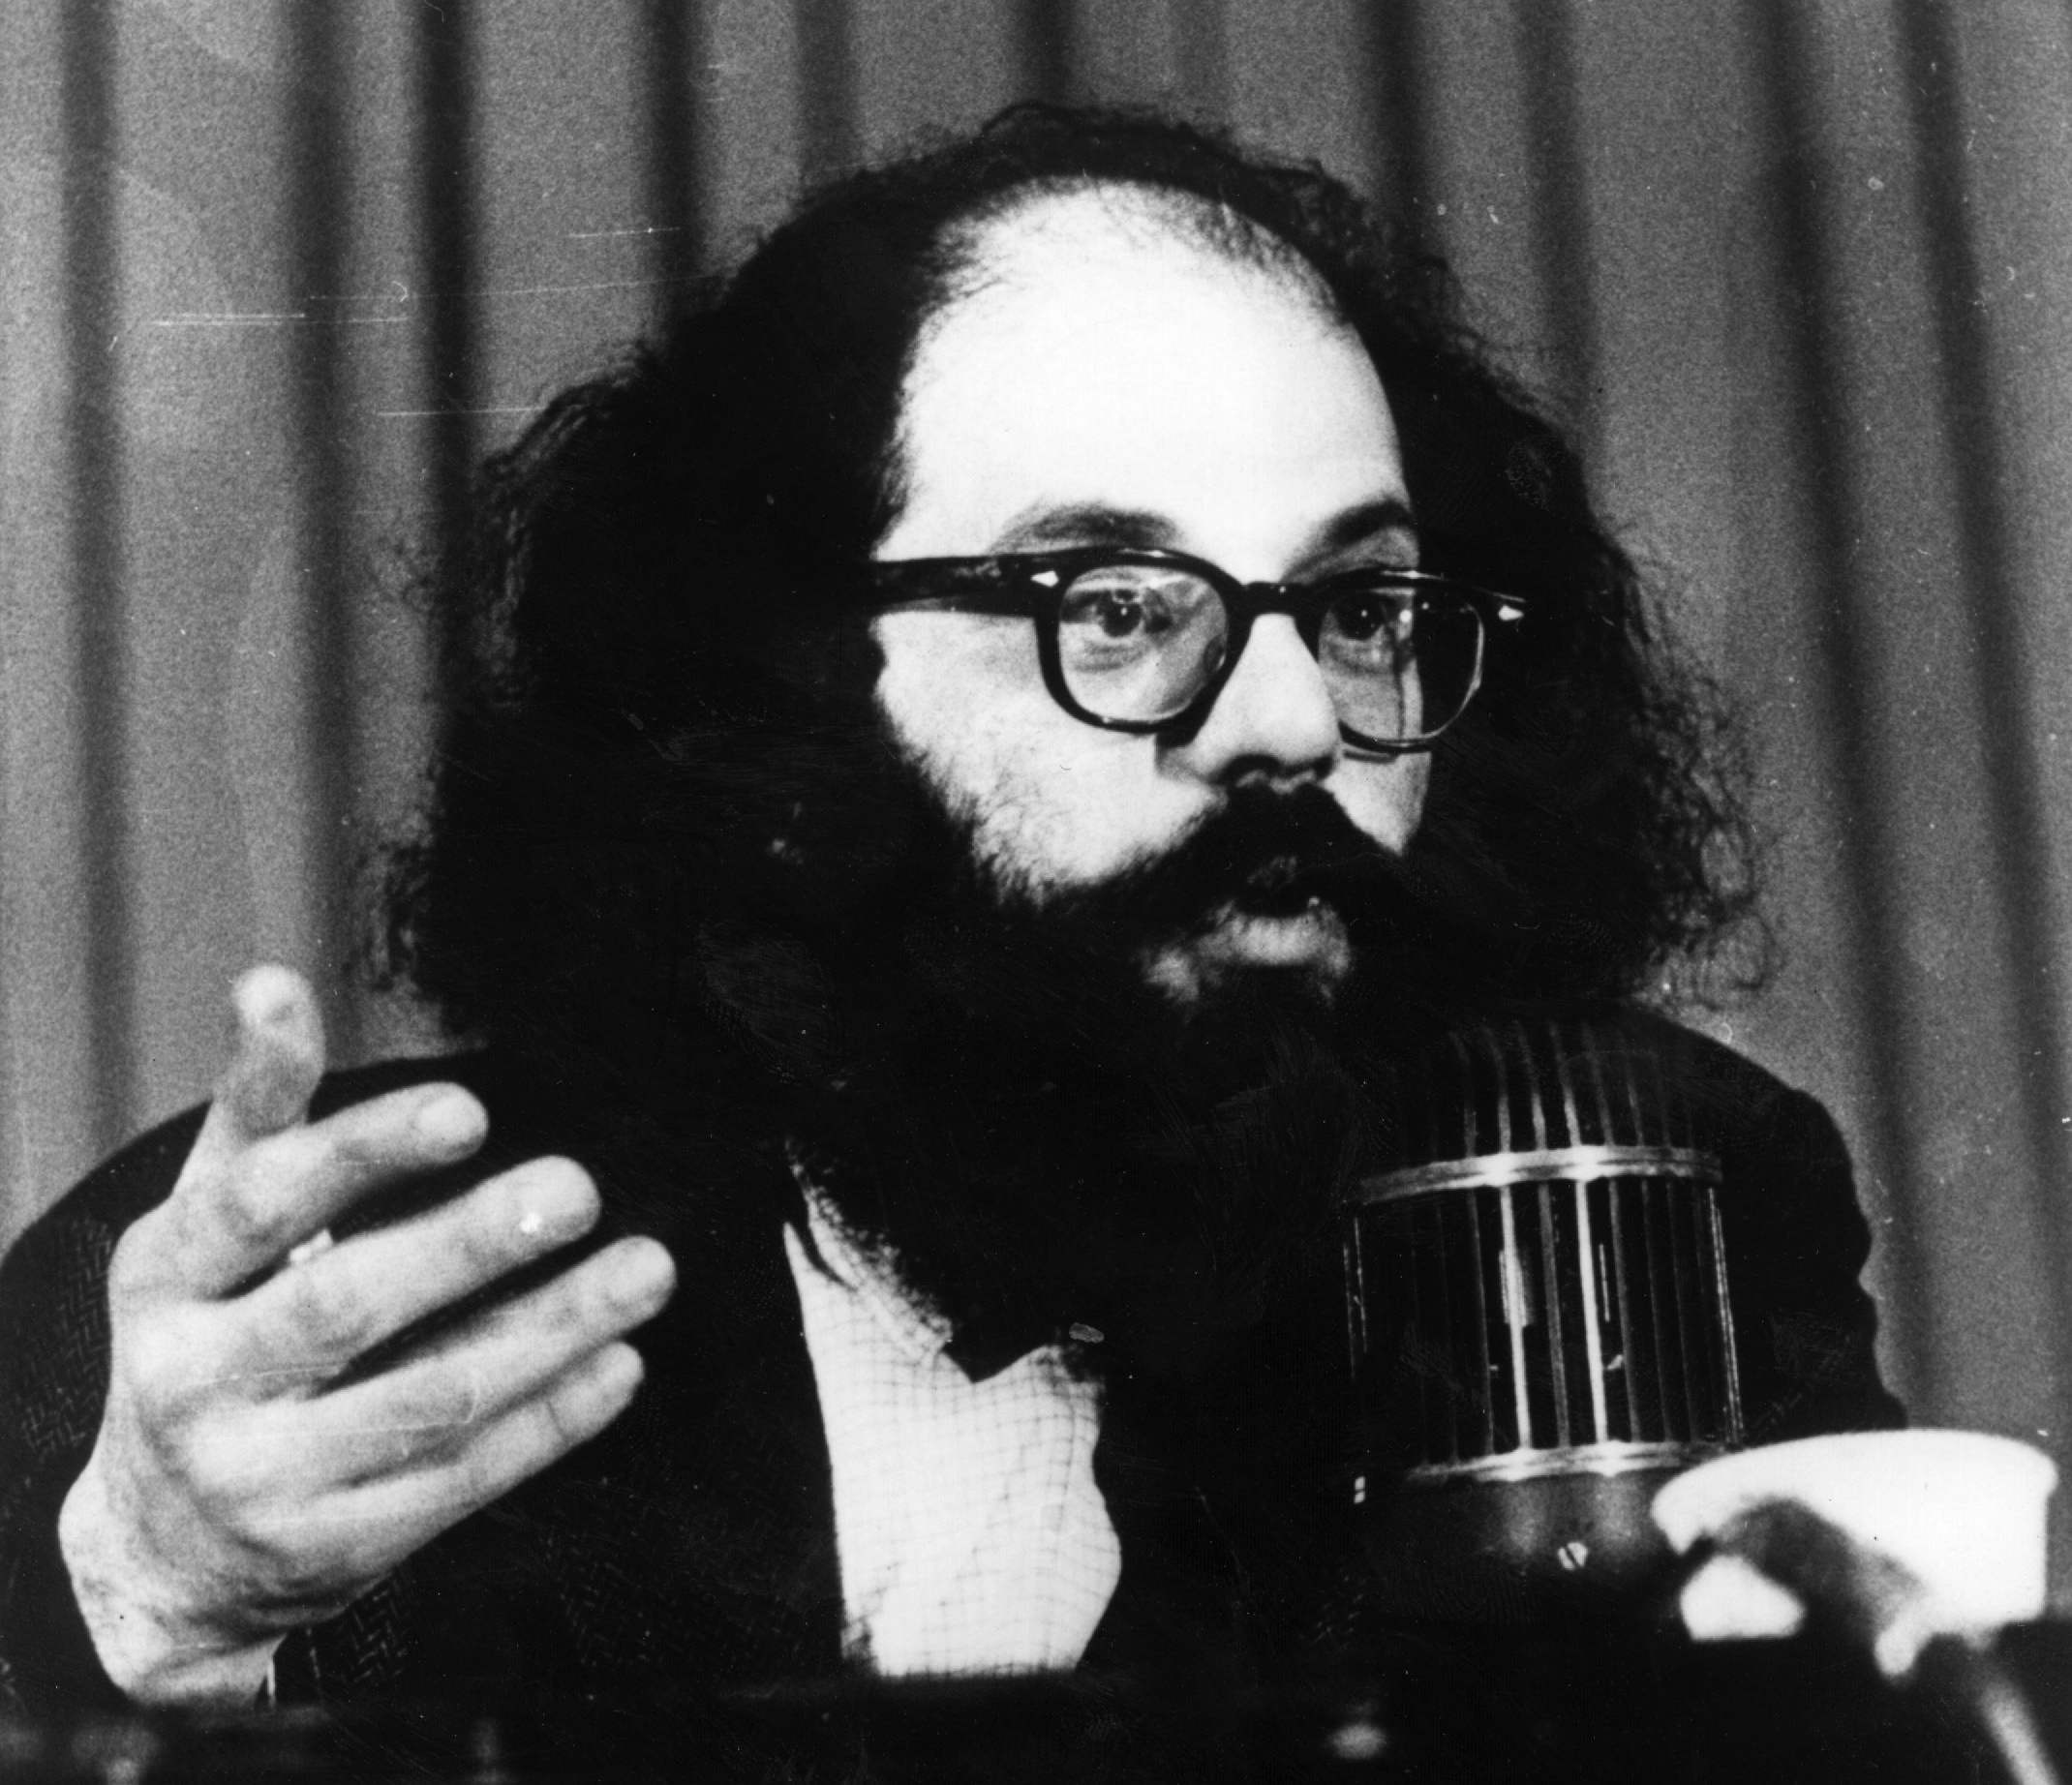 Allen Ginsberg facts